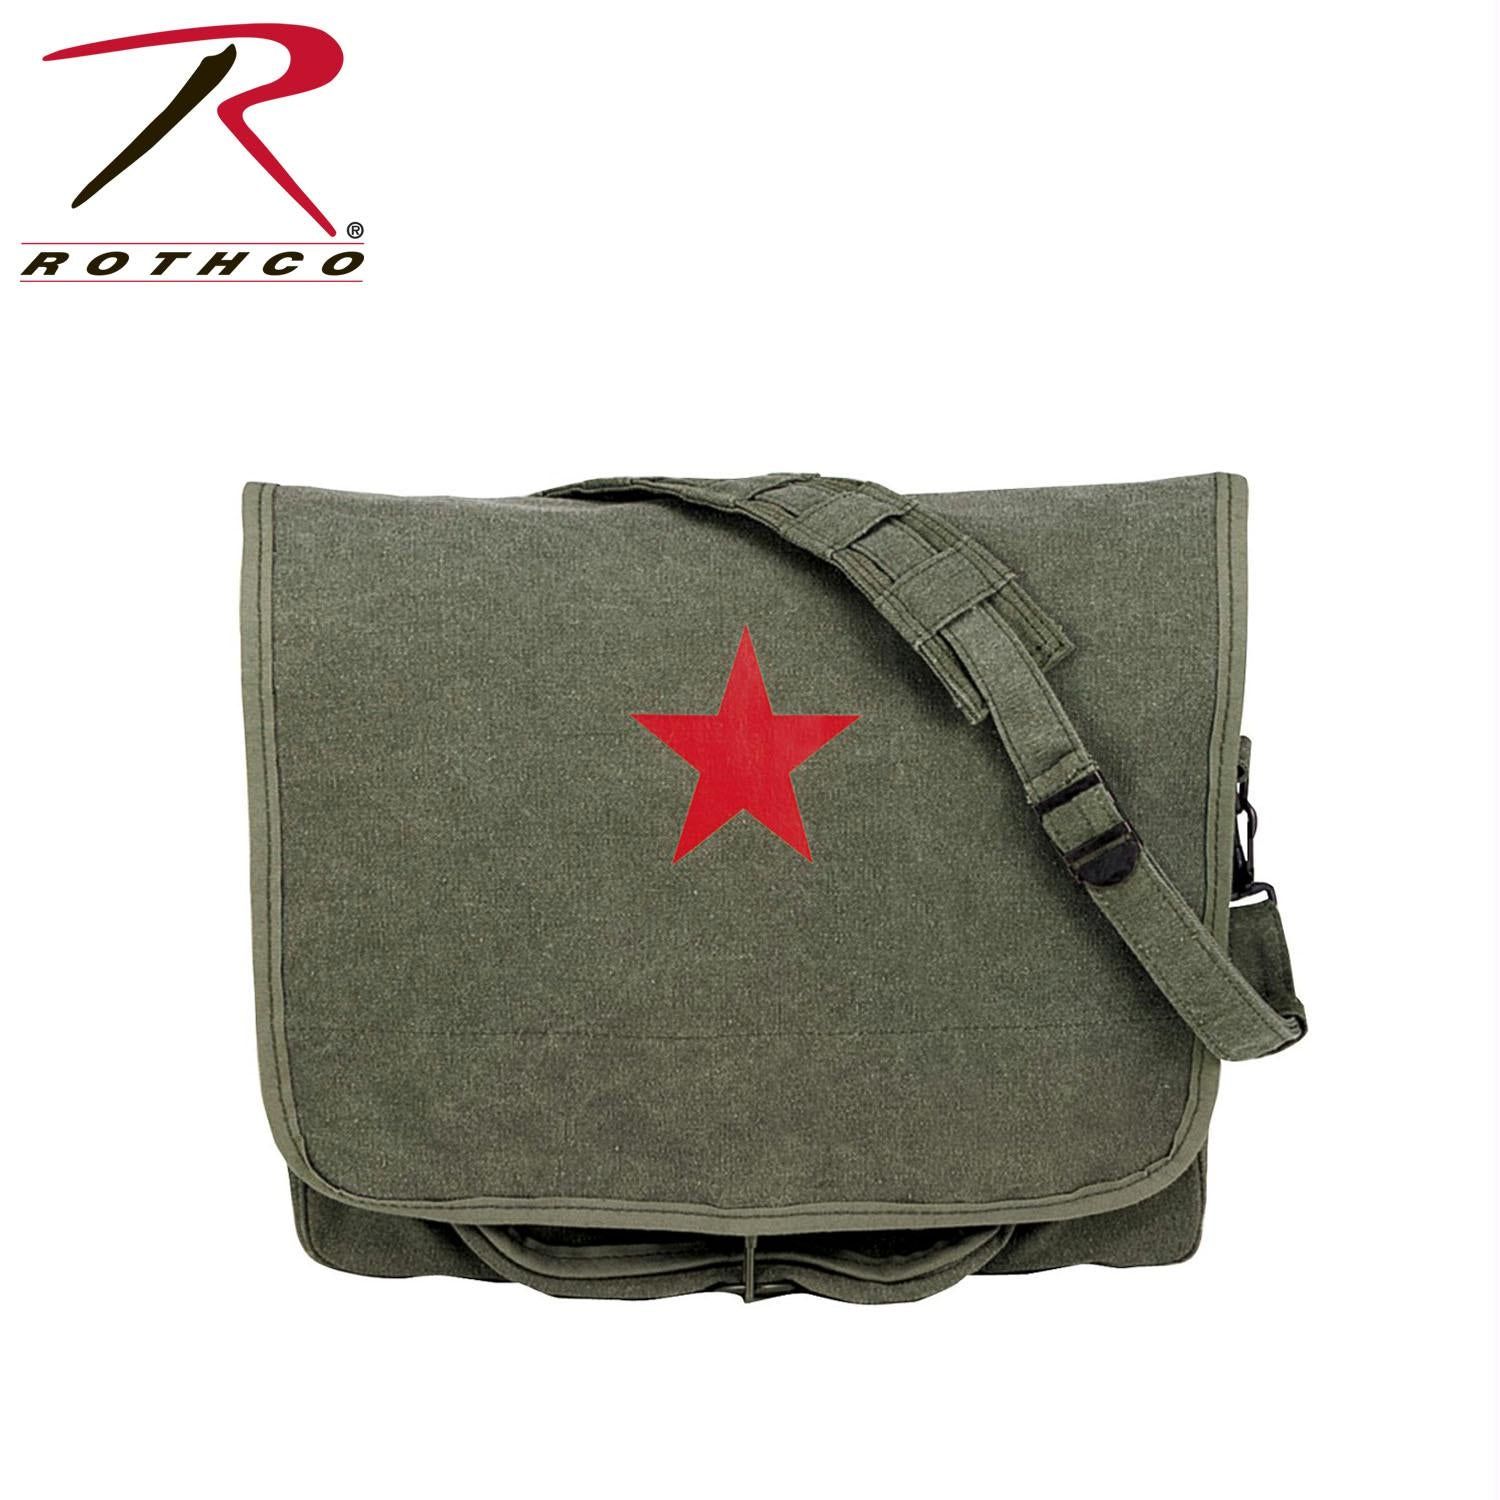 Rothco Canvas Shoulder Bag - Olive Drab